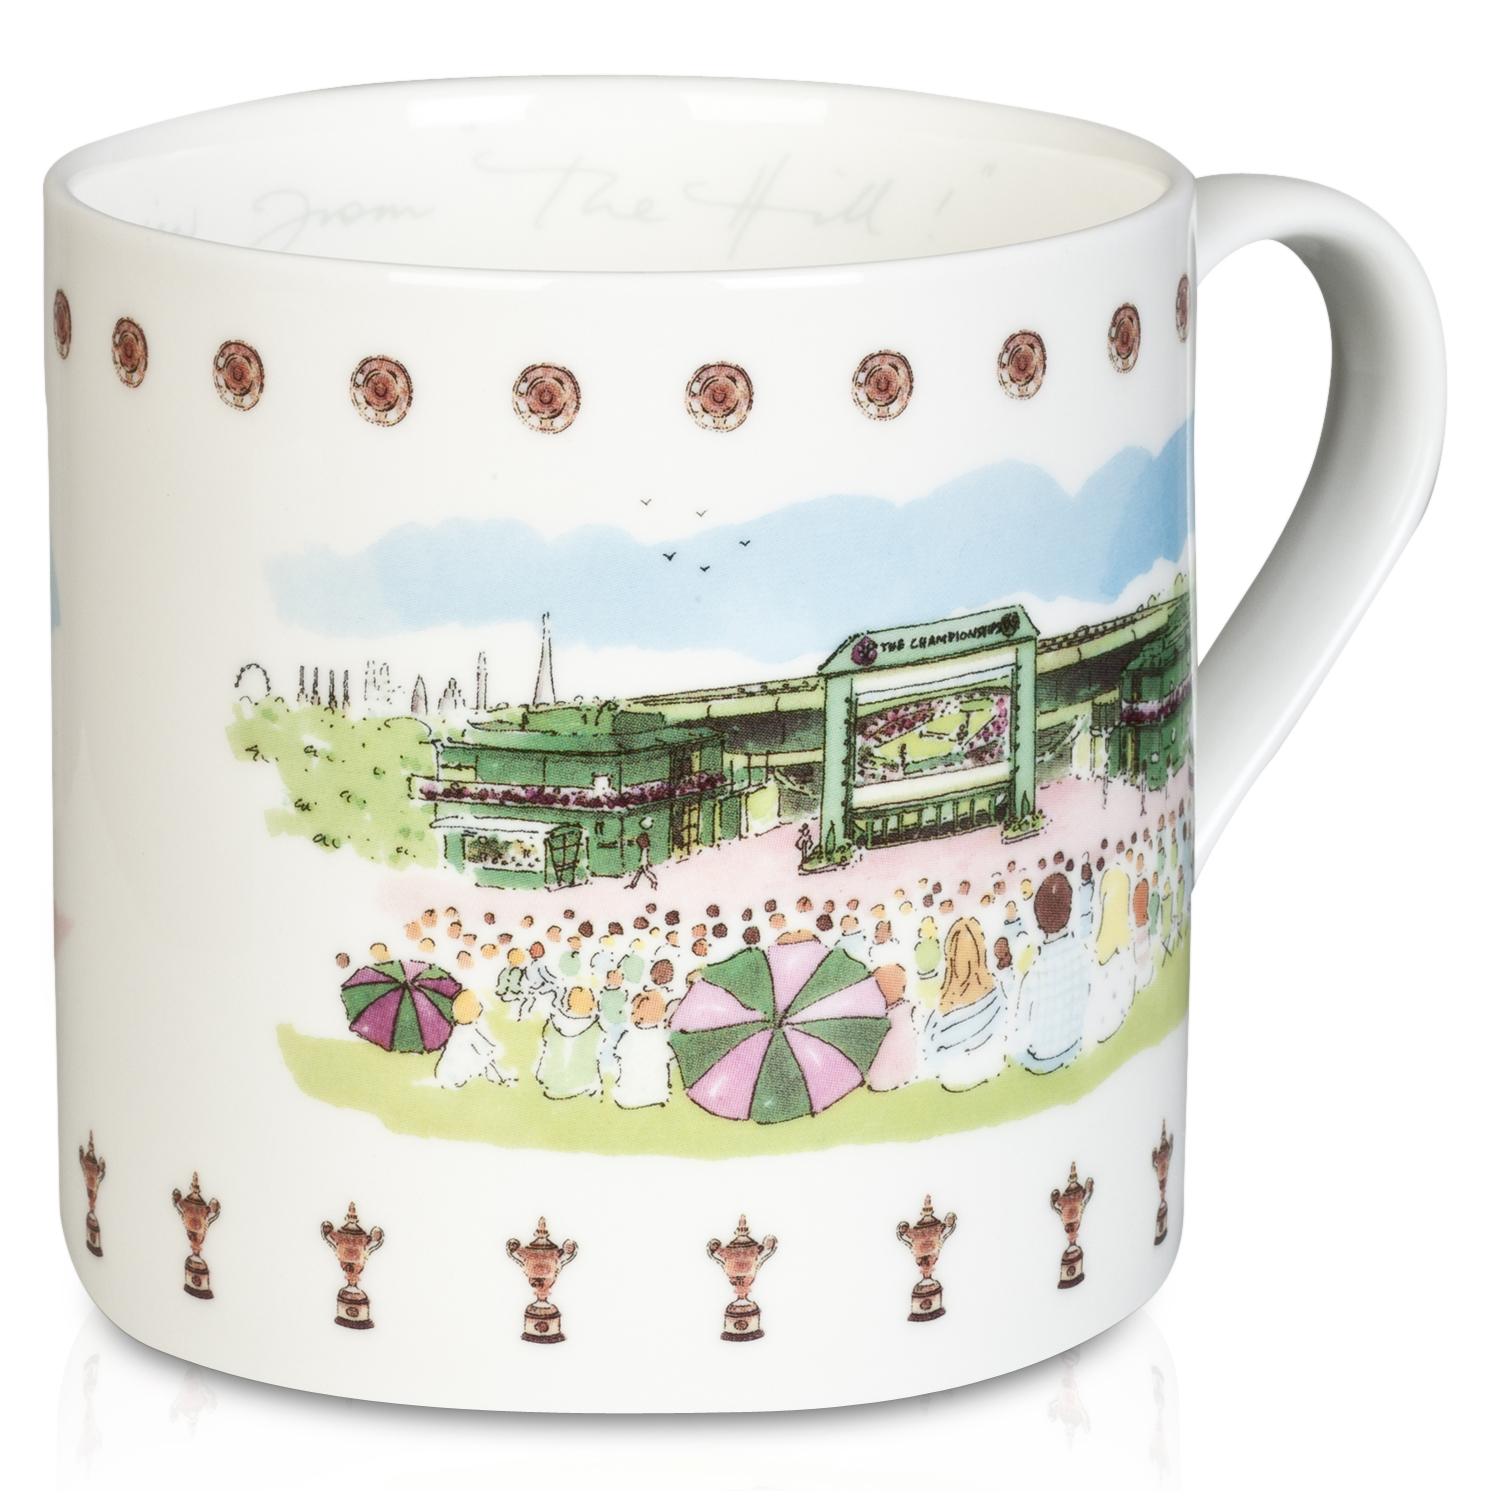 Wimbledon Mug With Hill View - Watercolour